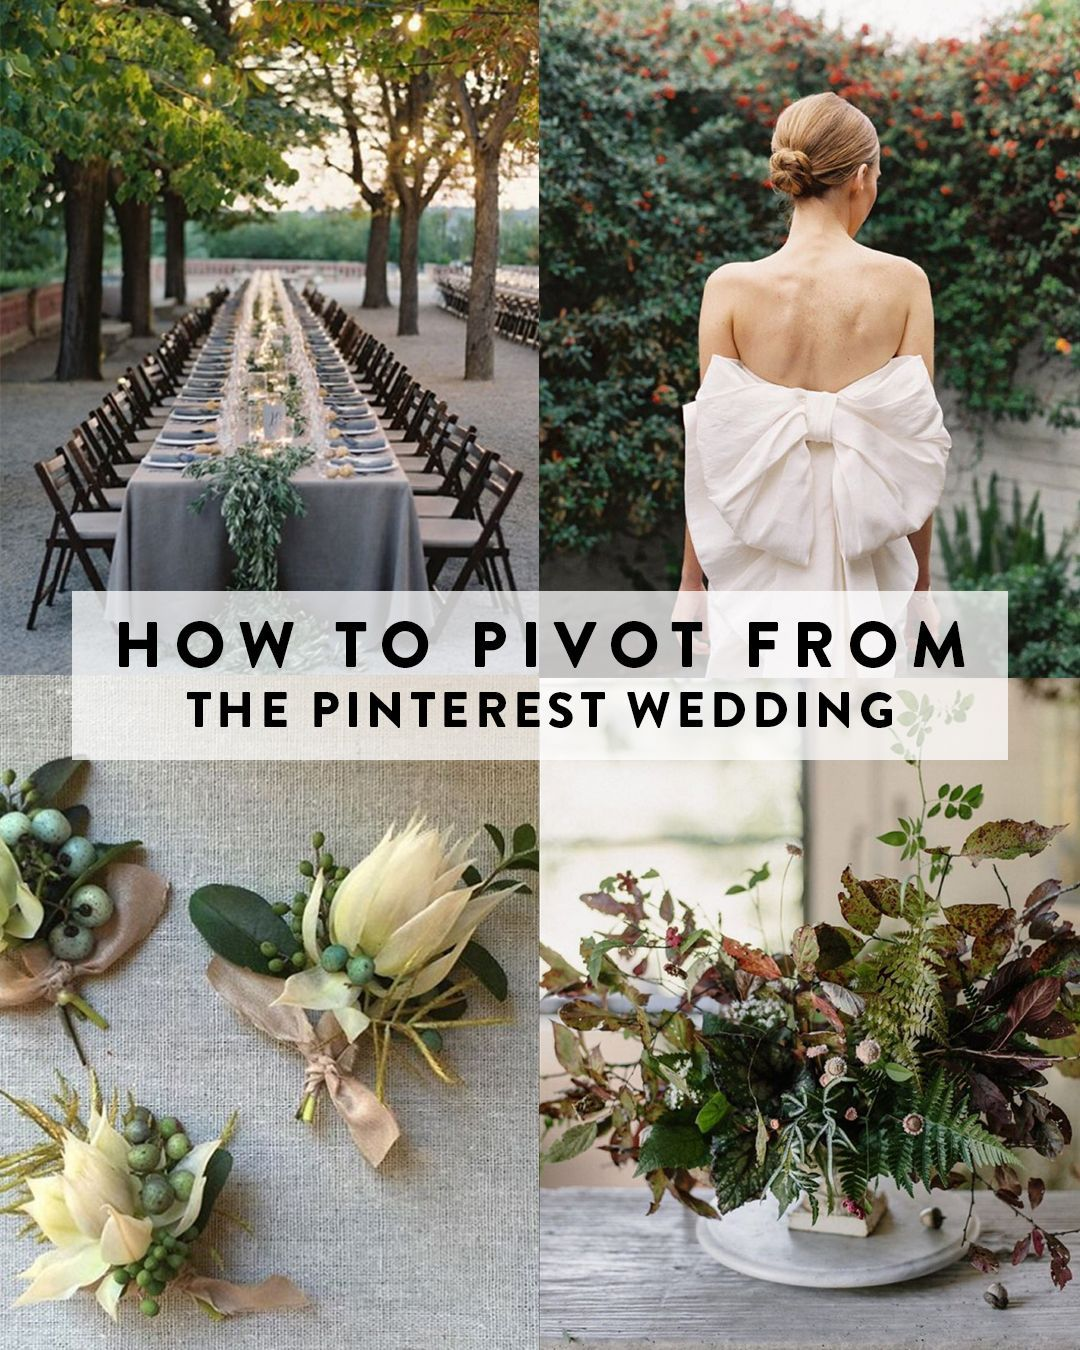 A Cure for the Pinterest Wedding